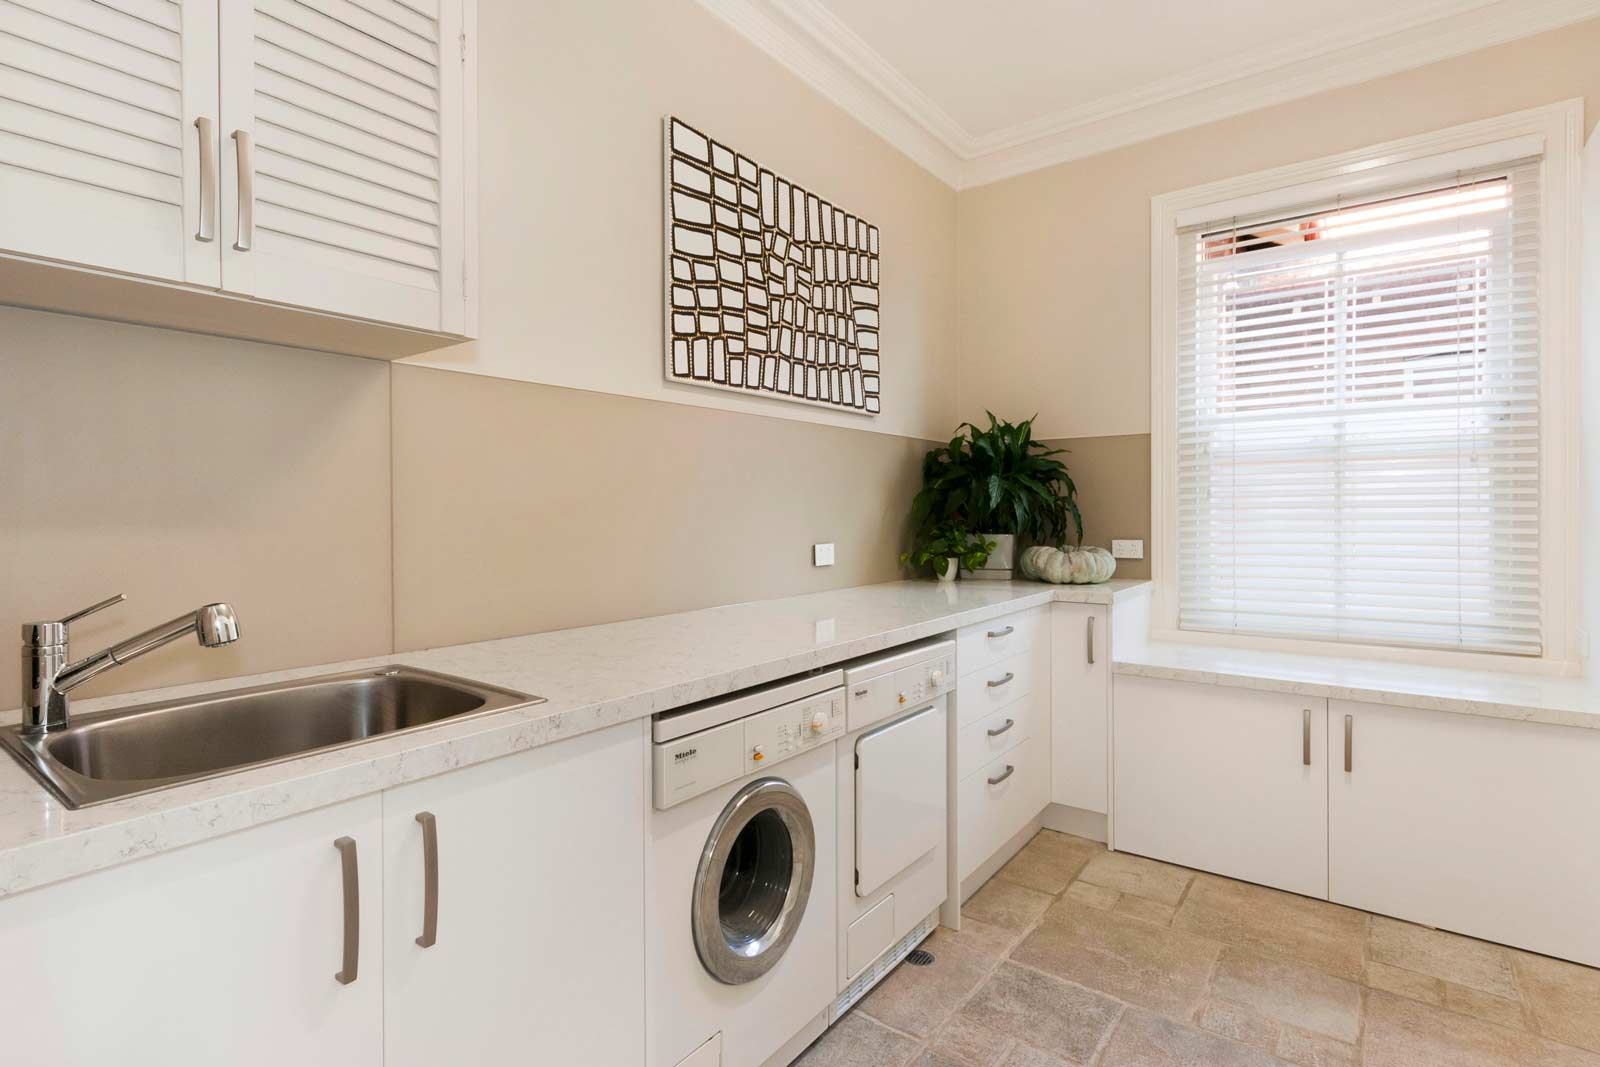 Modern laundry design featuring Miele appliances, Silestone quartz bench top in Blanco Orion, white laminate doors, a second fridge & plenty of extra storage